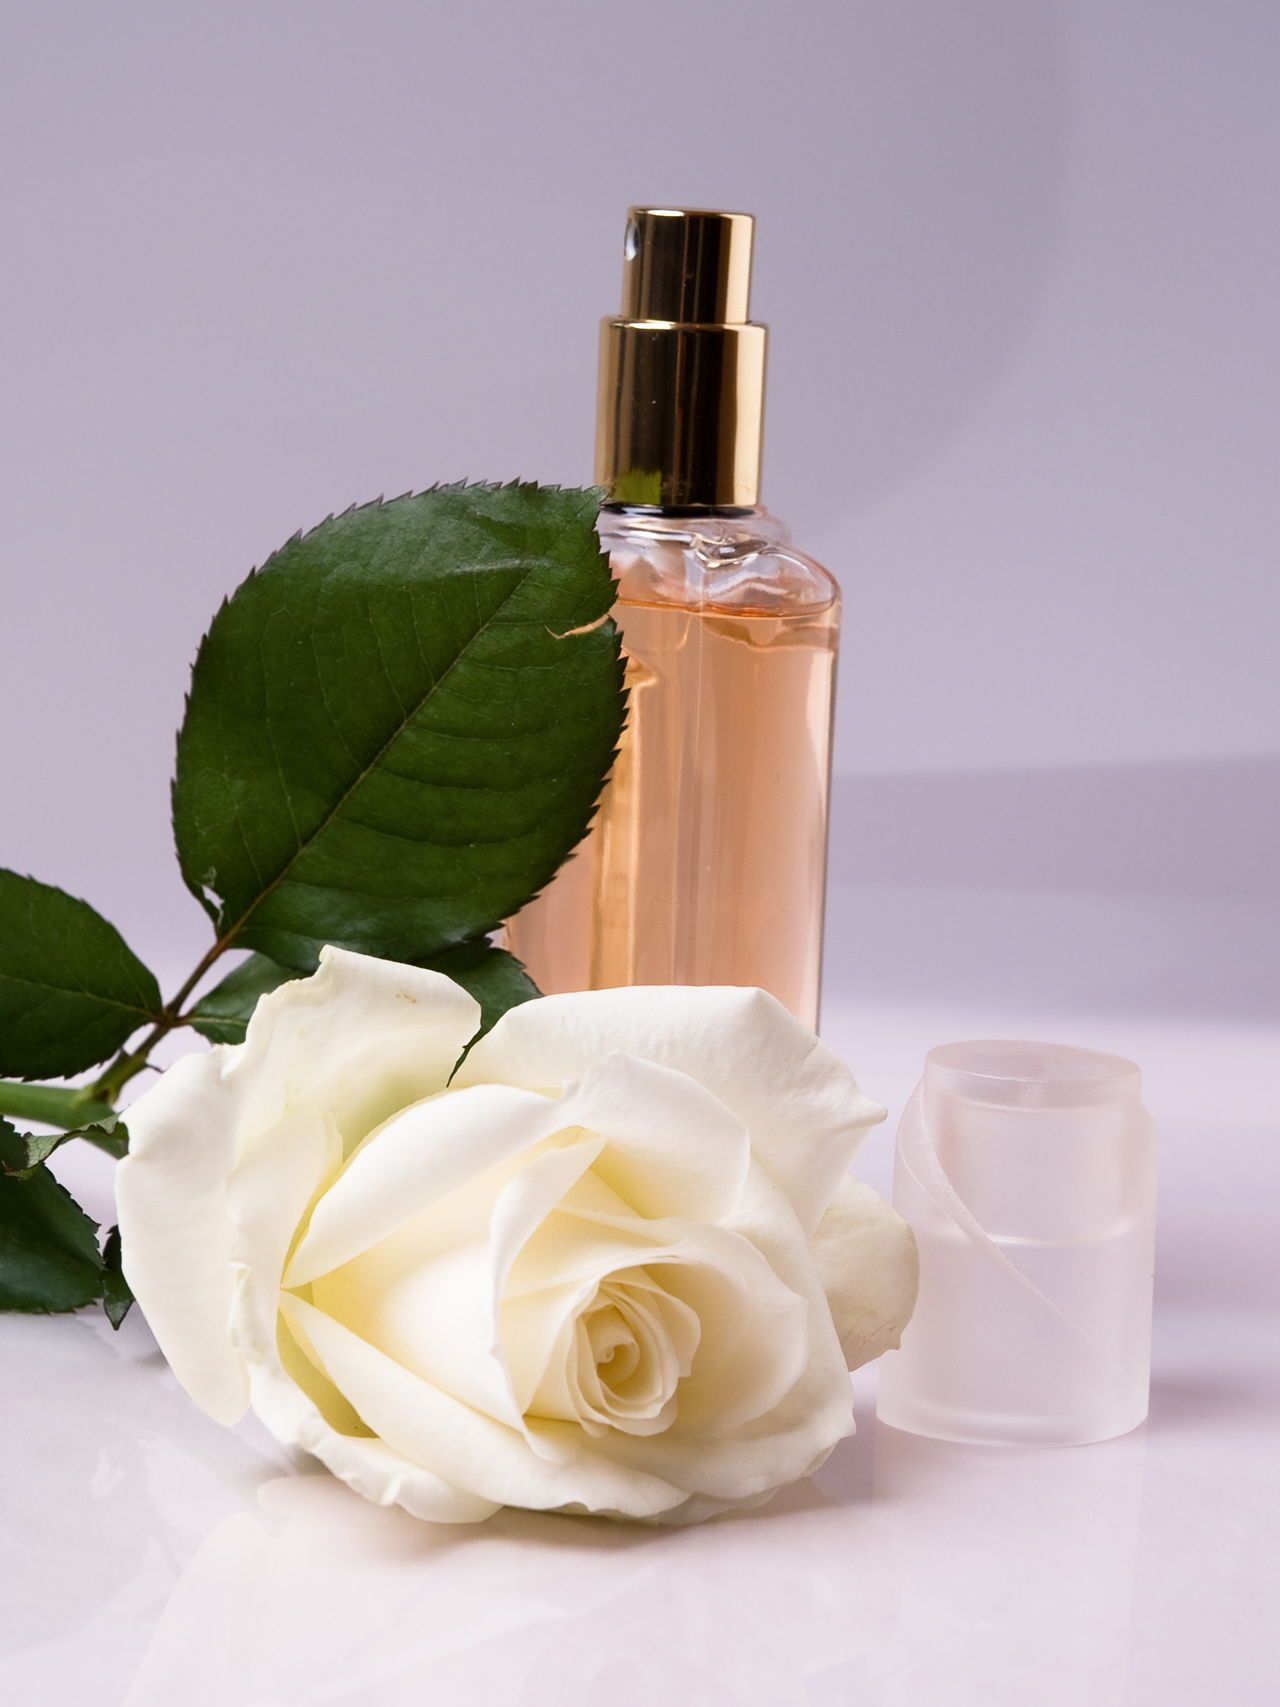 How to Make Your Own Homemade Perfume from Flowers